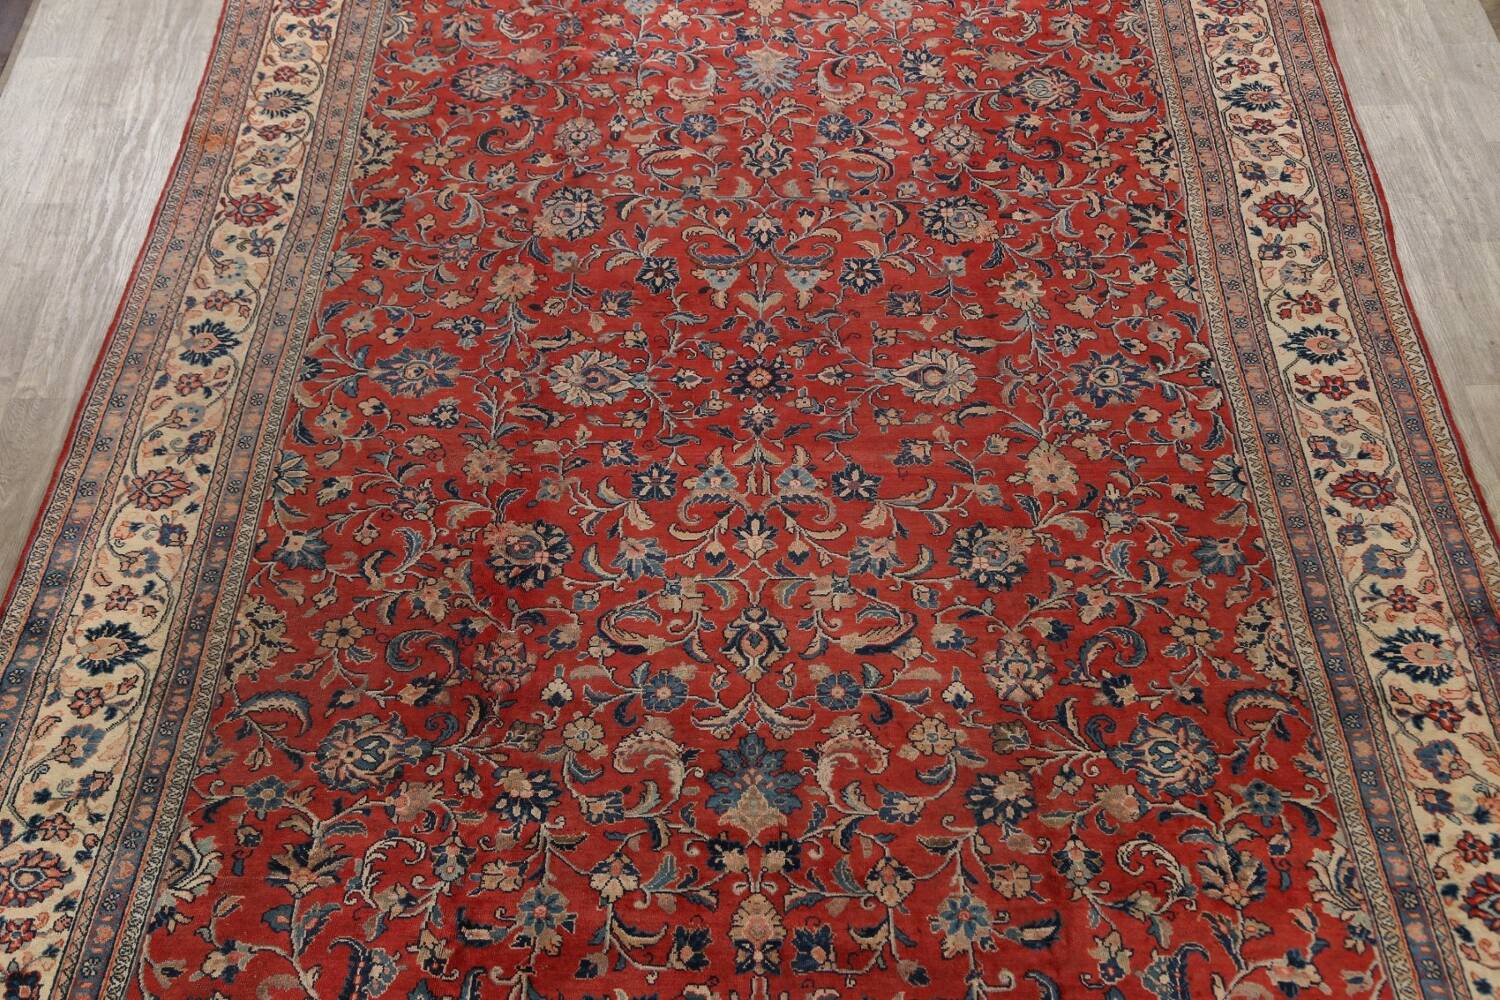 Antique Floral Mahal Persian Area Rug 10x14 image 3